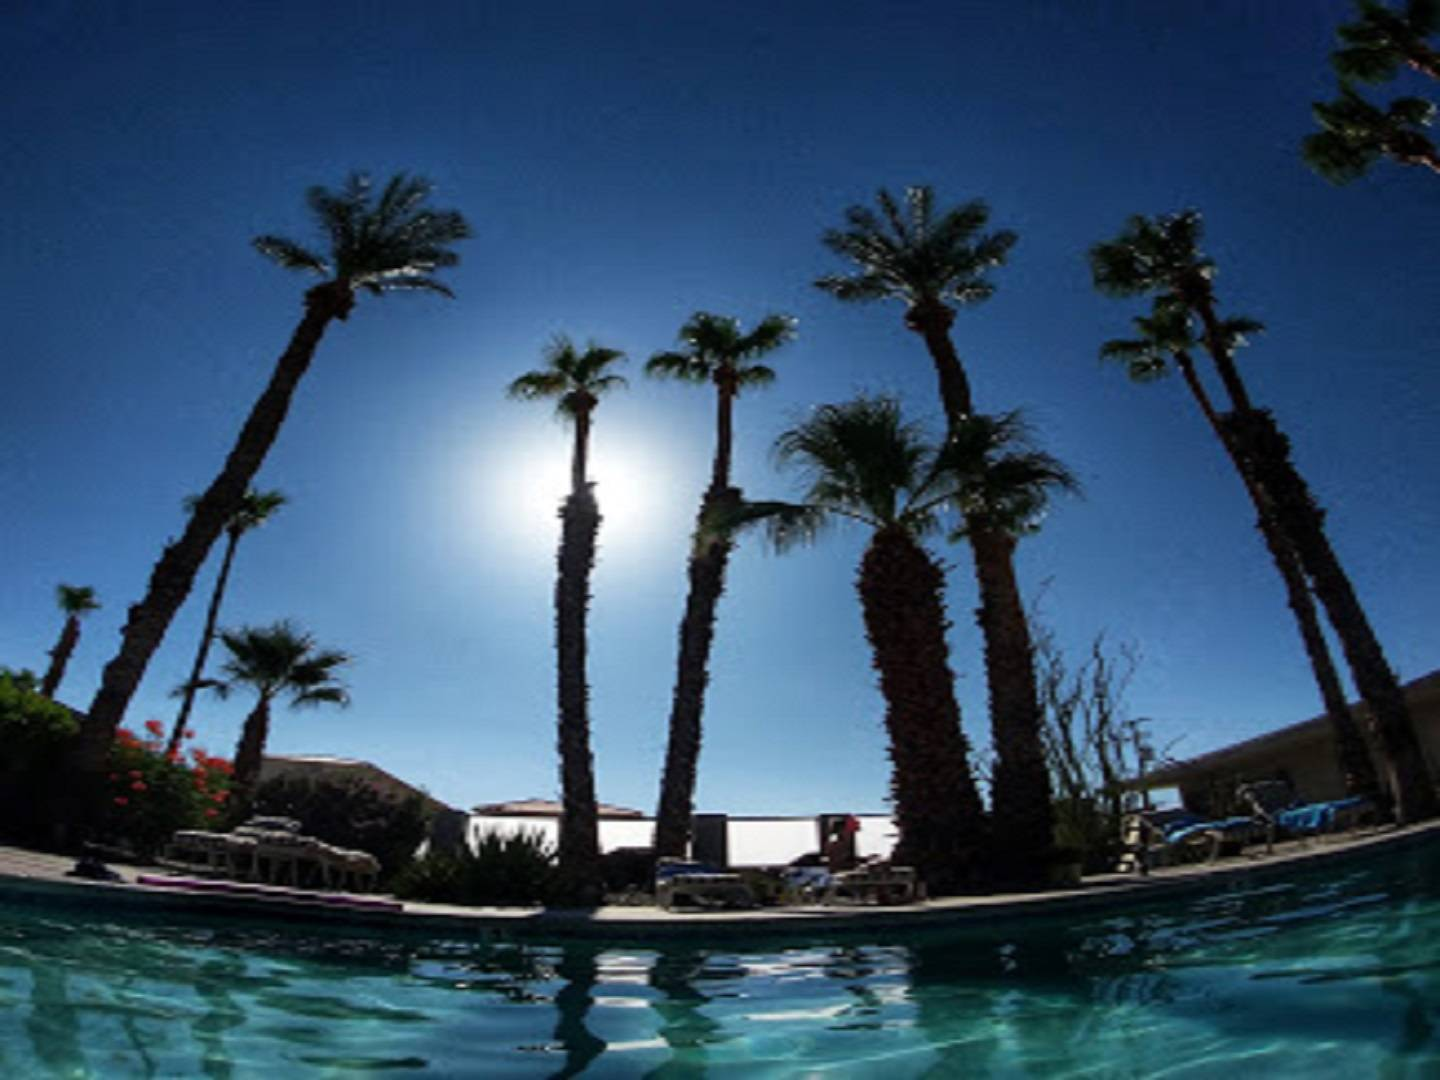 A group of palm trees at Lido Palms Resort & Spa.